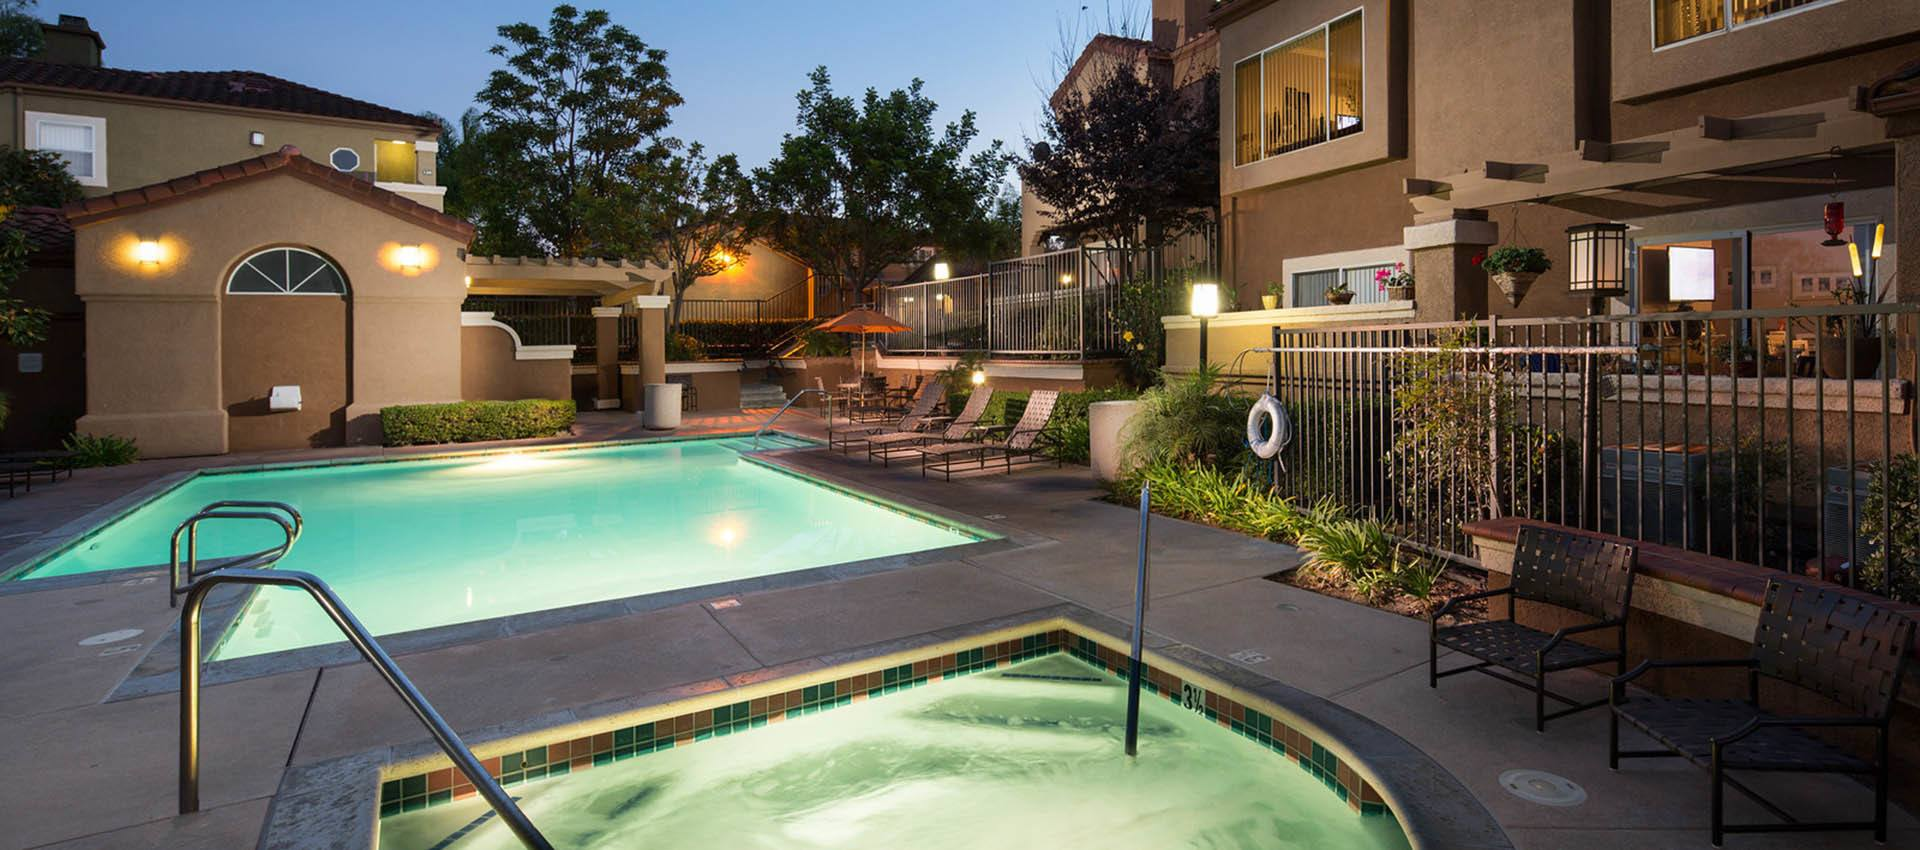 Resort Style Pool And Spa at Niguel Summit Condominium Rentals in Laguna Niguel, CA